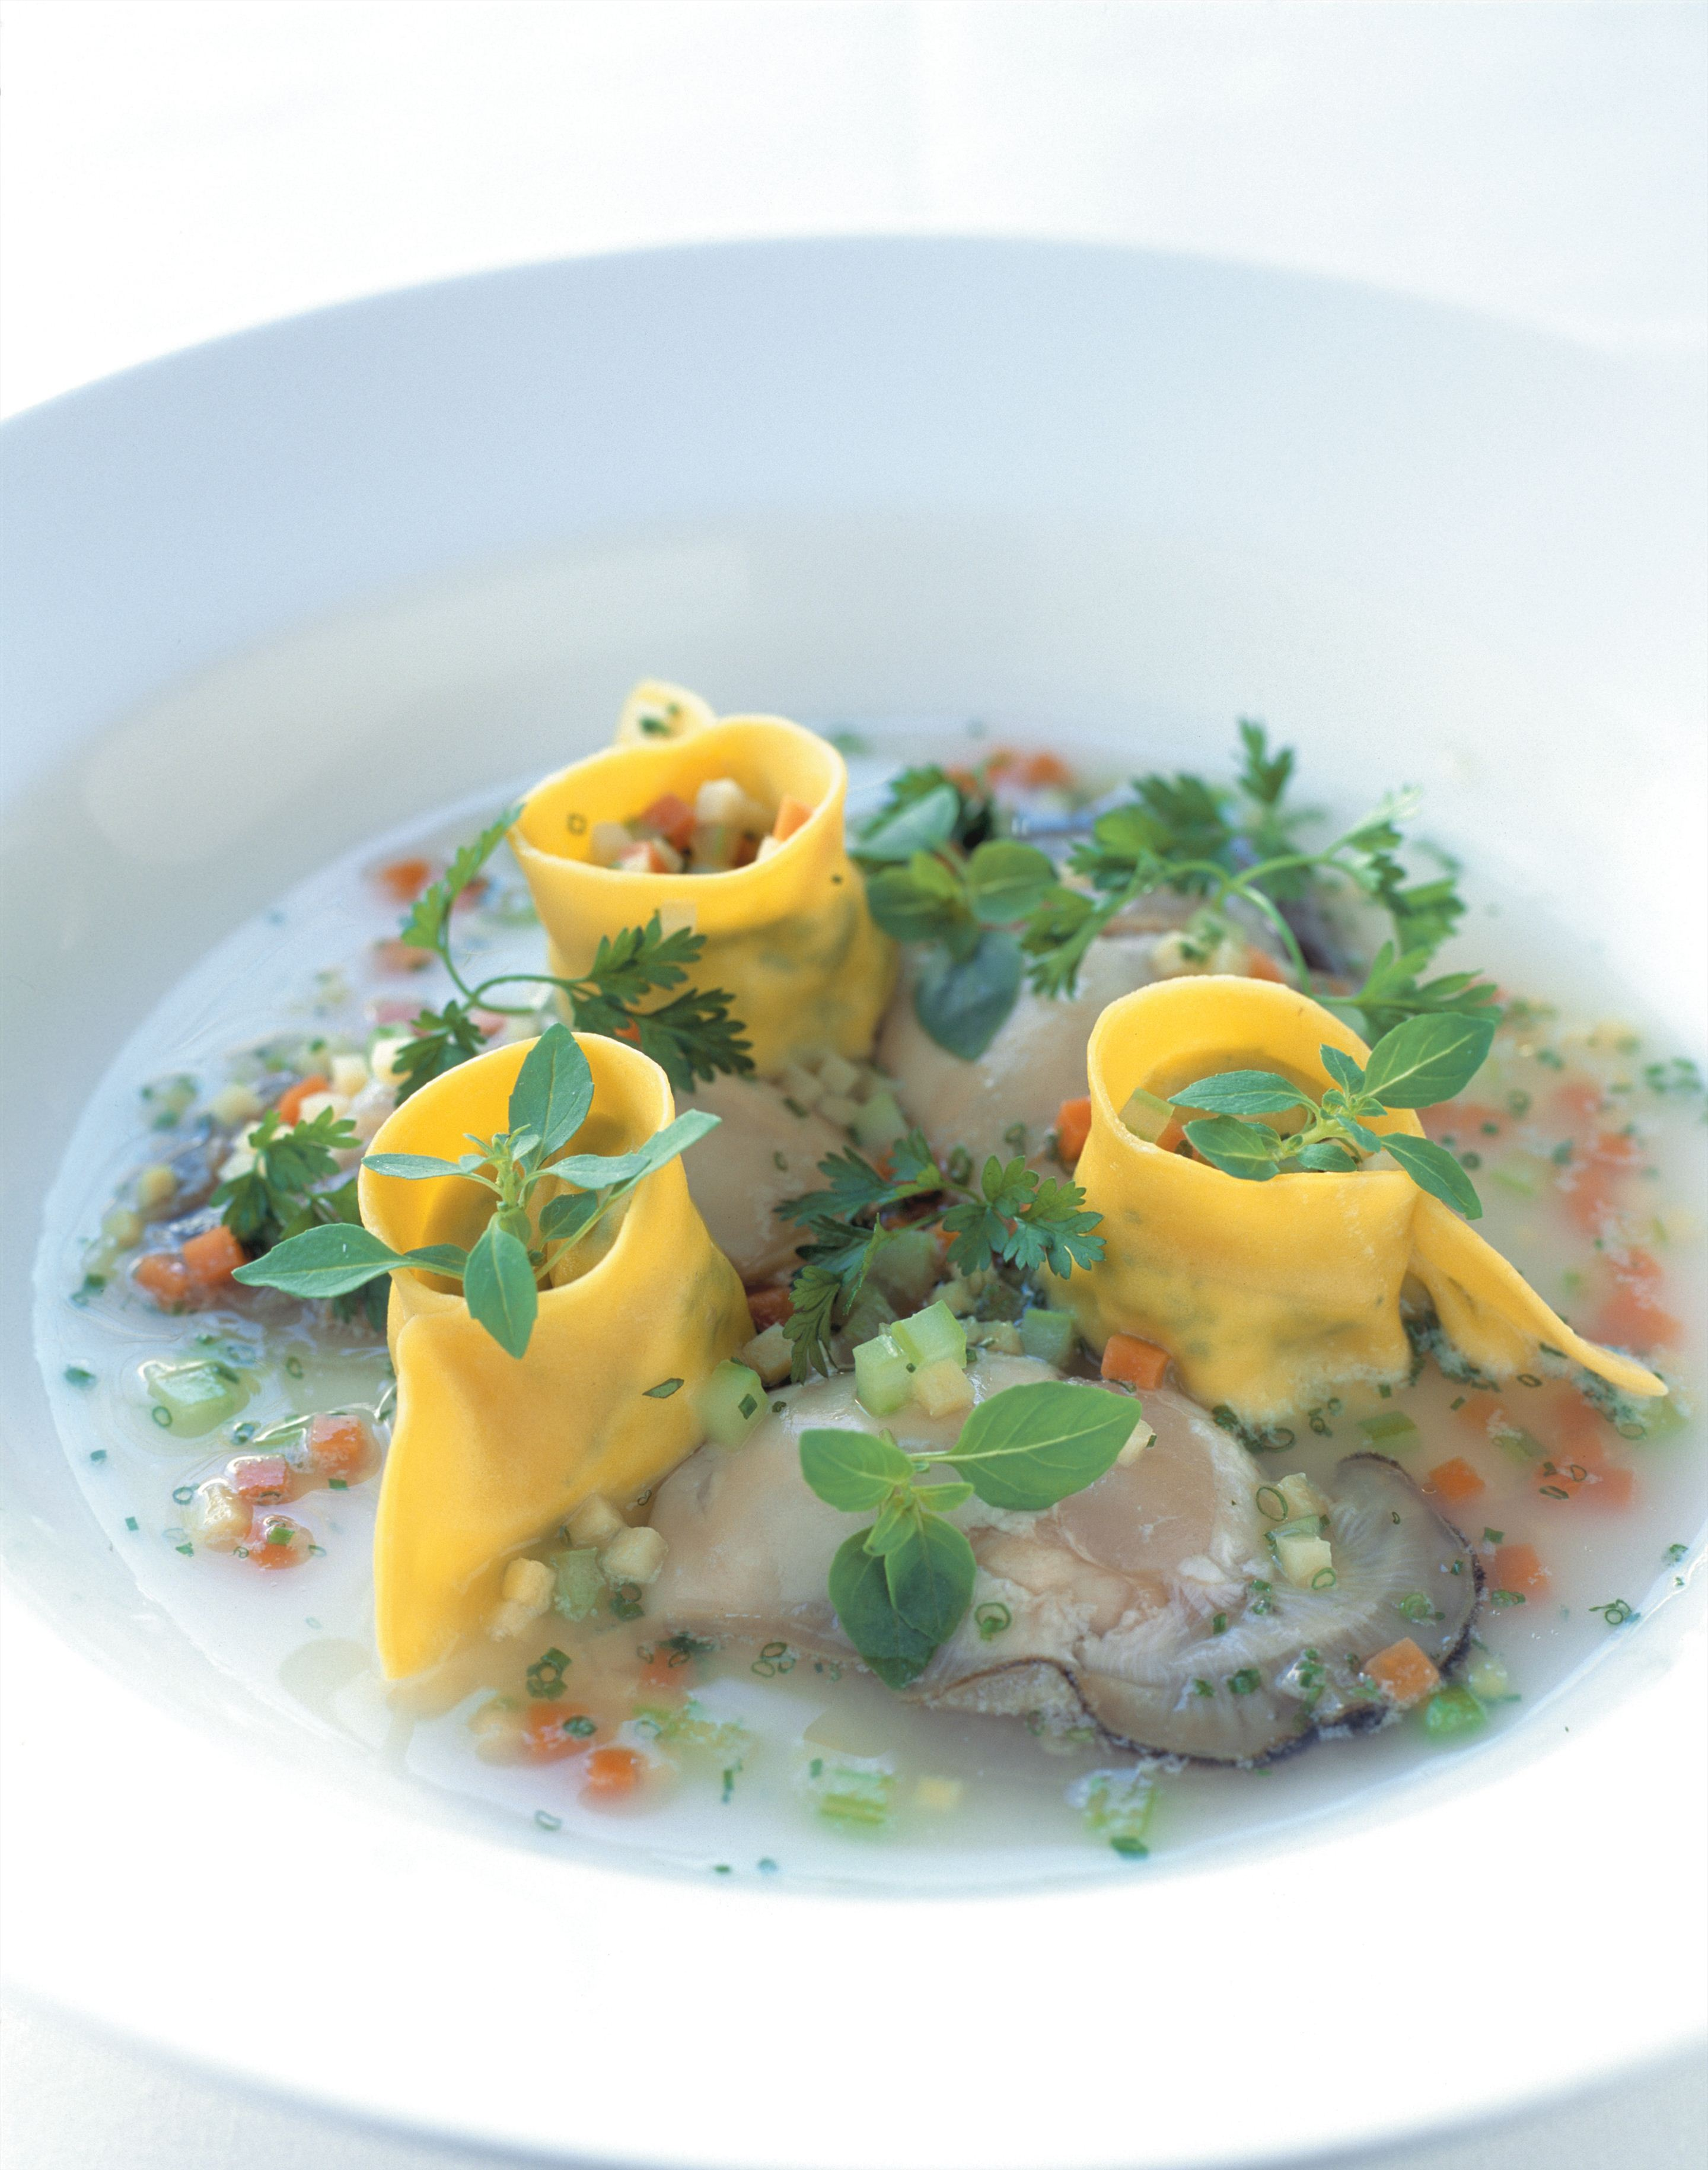 Nage of angasi oysters with scallop and ginger tortellini